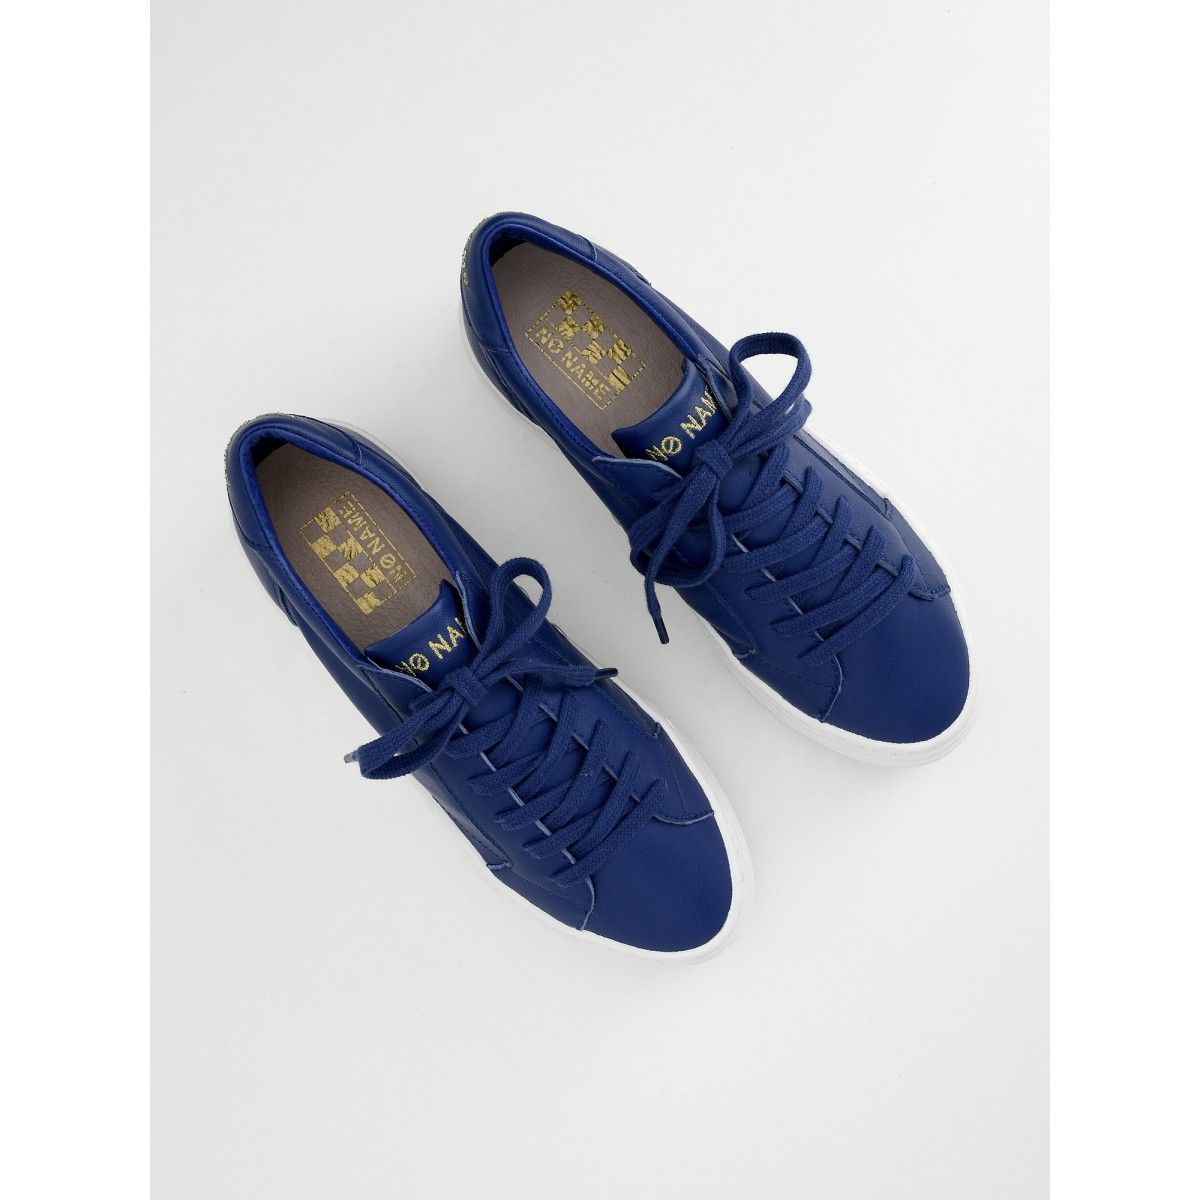 No Name Spice Sneaker - Lambskin - Electric Blue